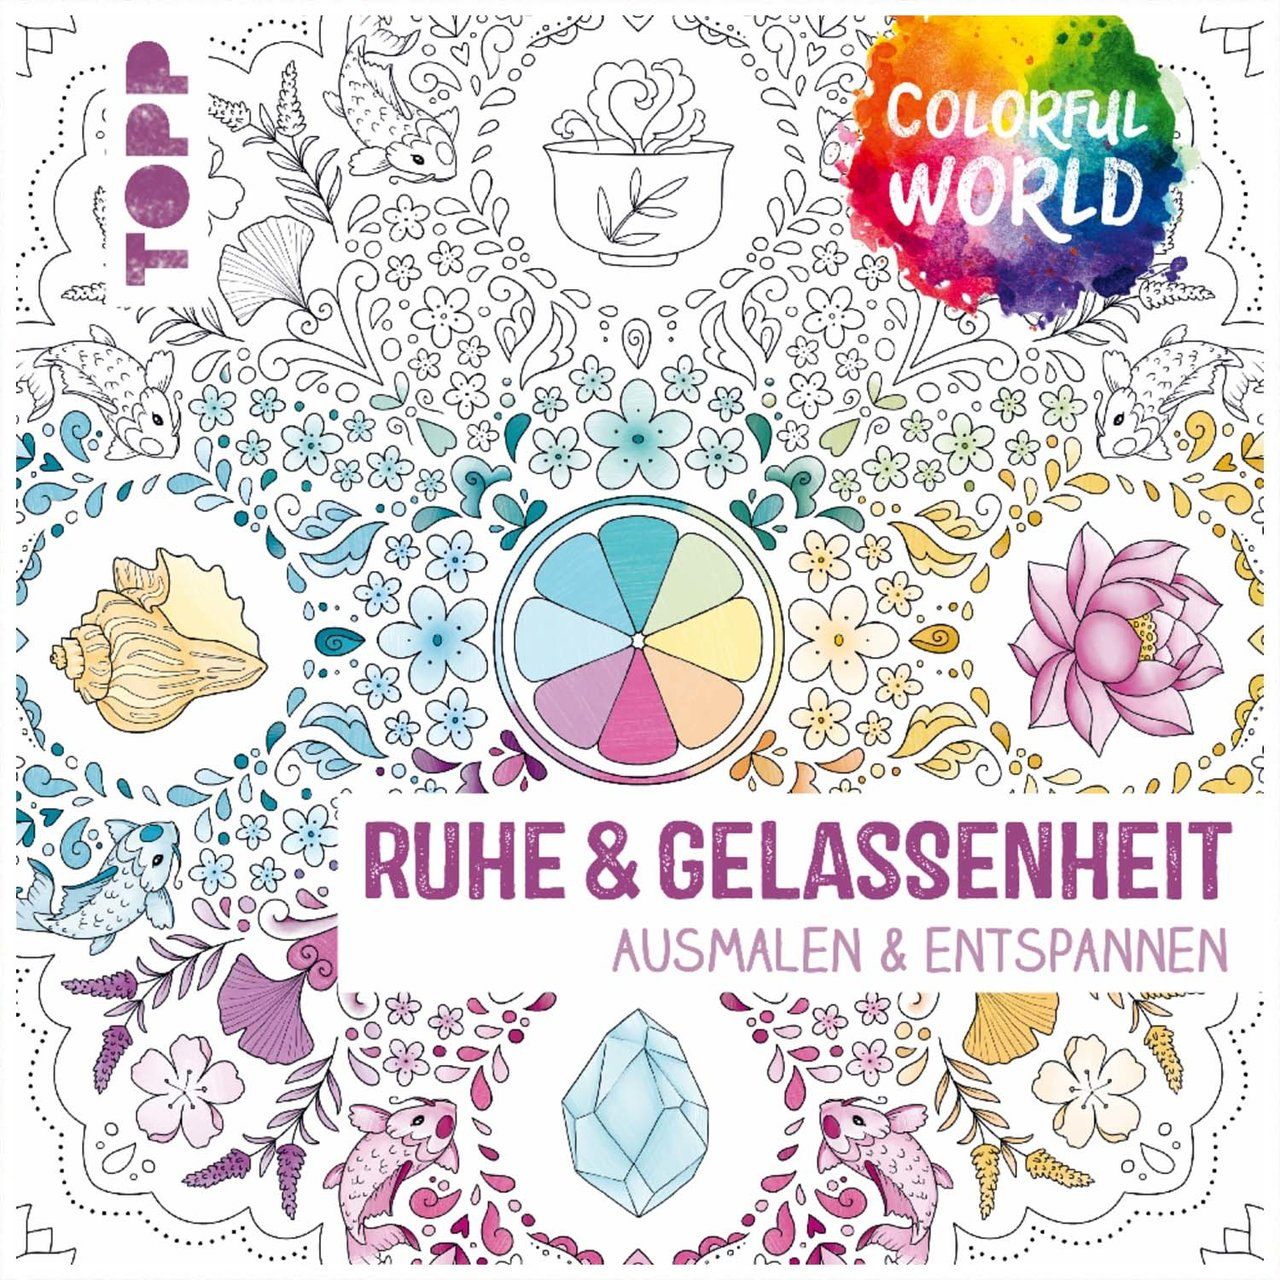 TOPP Colorful World - Ruhe & Gelassenheit von TOPP